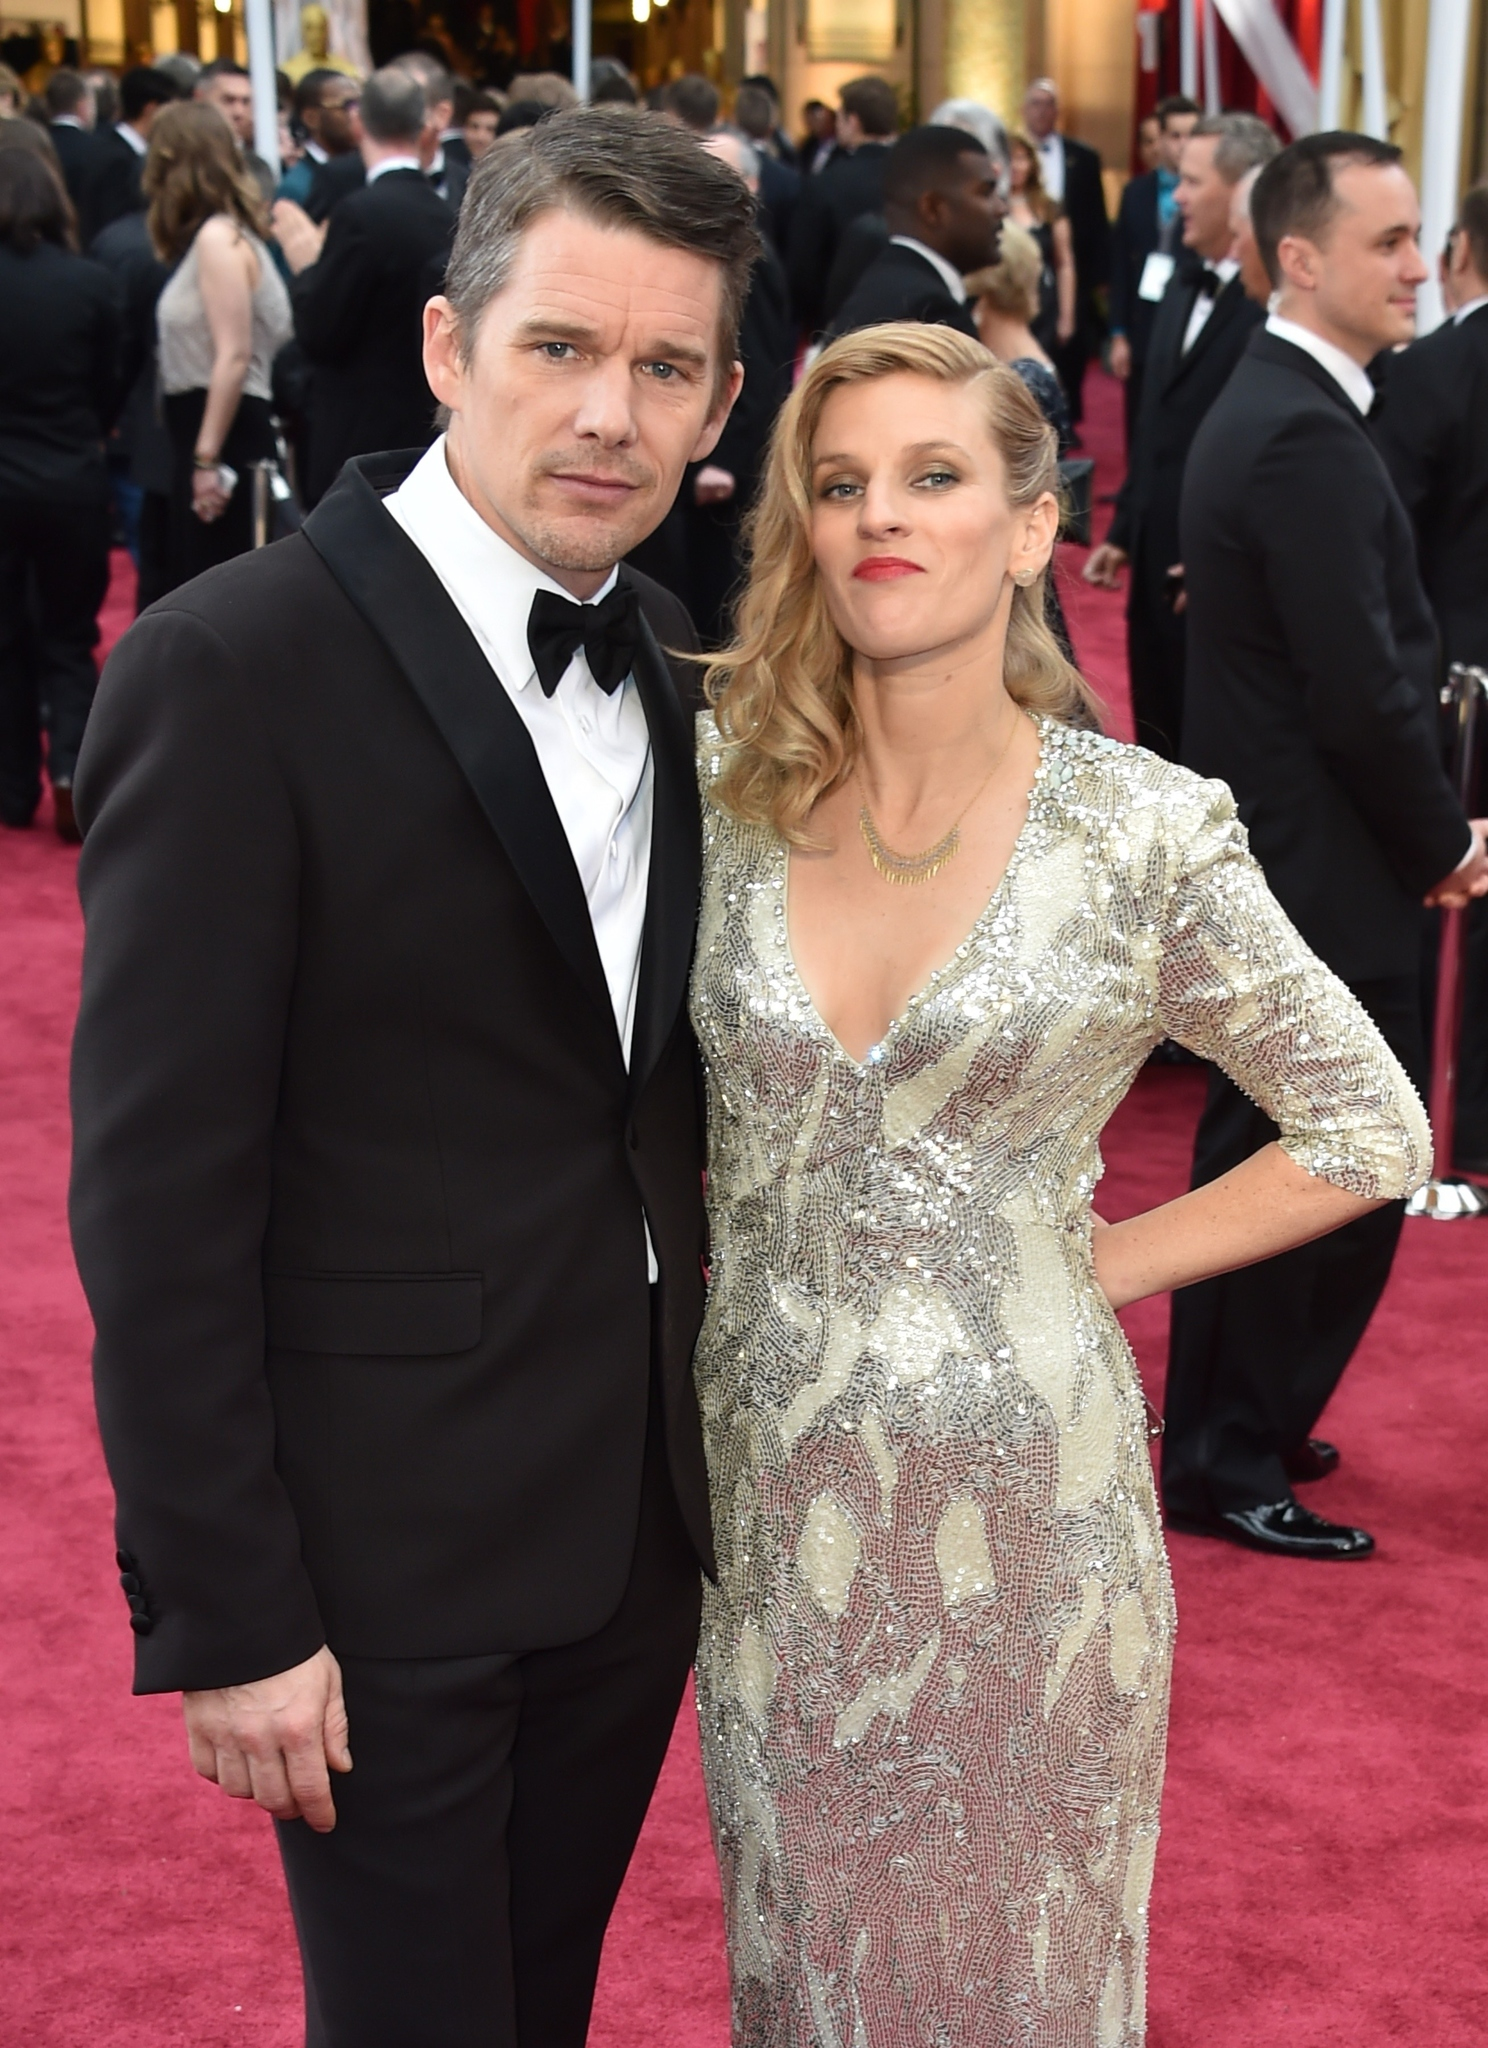 Ethan Hawke and Ryan Hawke at an event for The Oscars (2015)